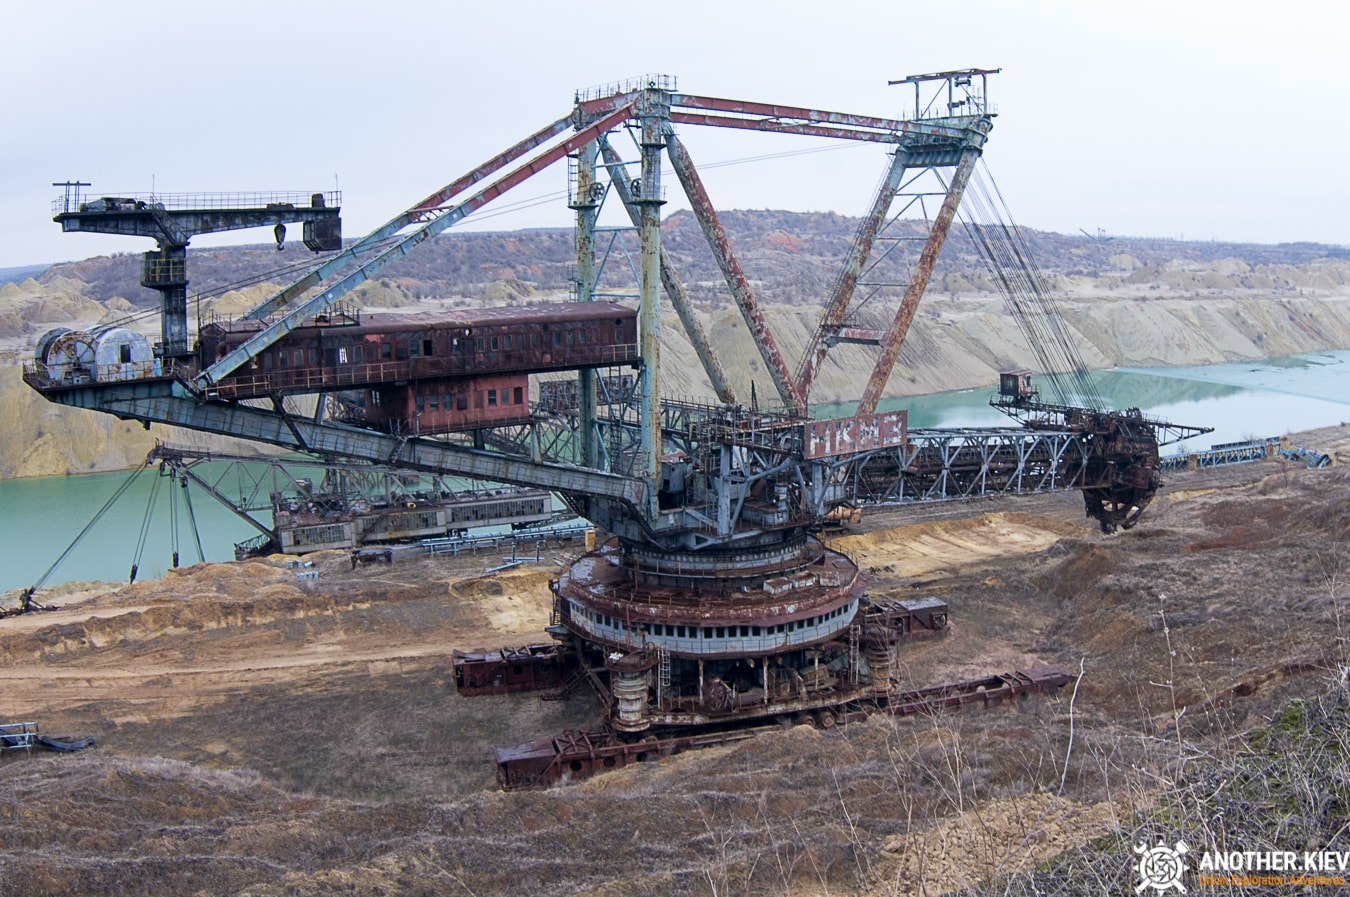 abandoned excavator in the Morozovo coal mine